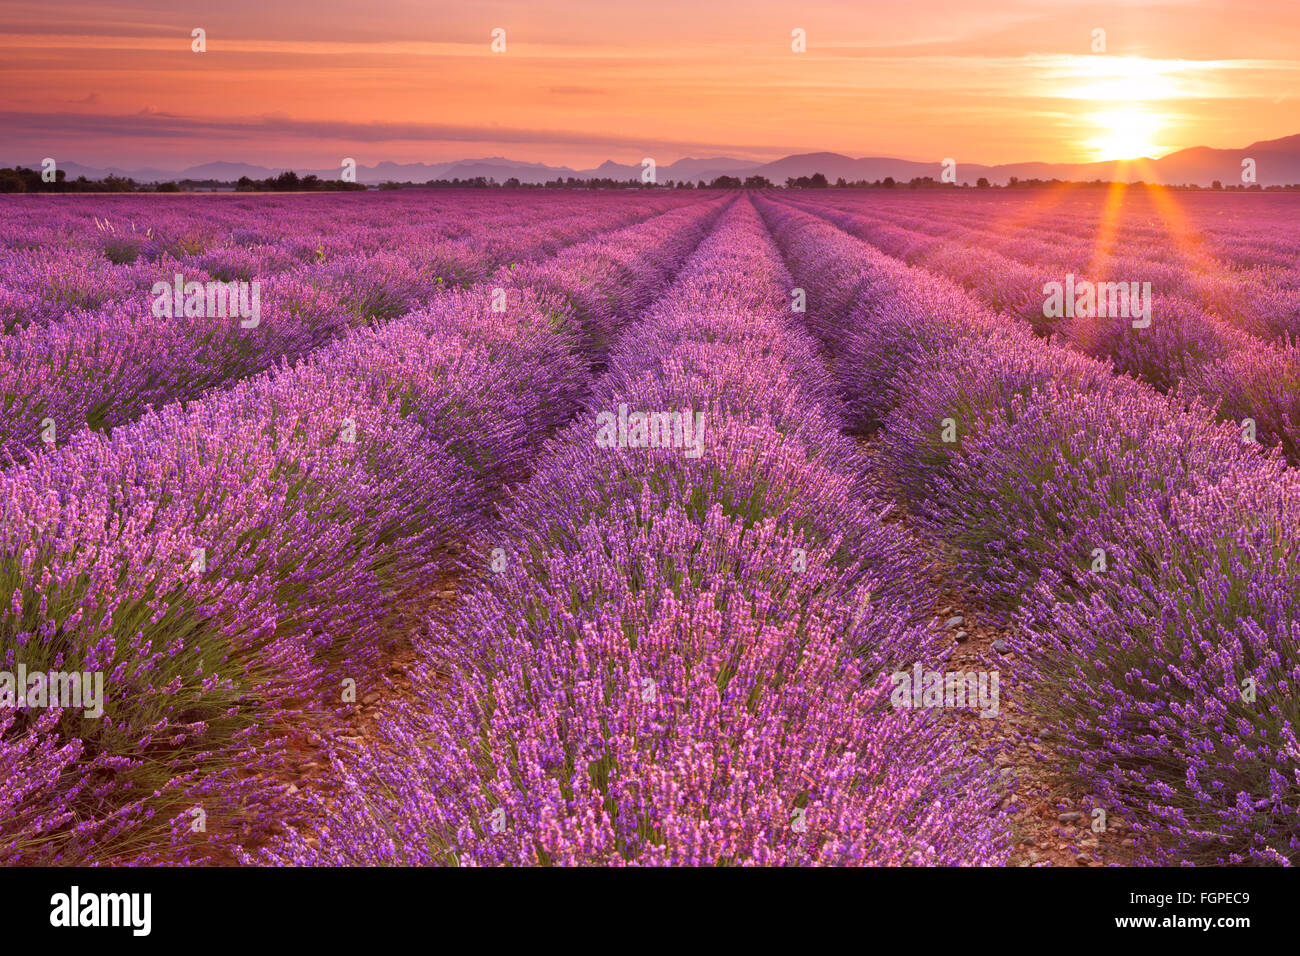 Sunrise over blooming fields of lavender on the Valensole plateau in the Provence in southern France. - Stock Image